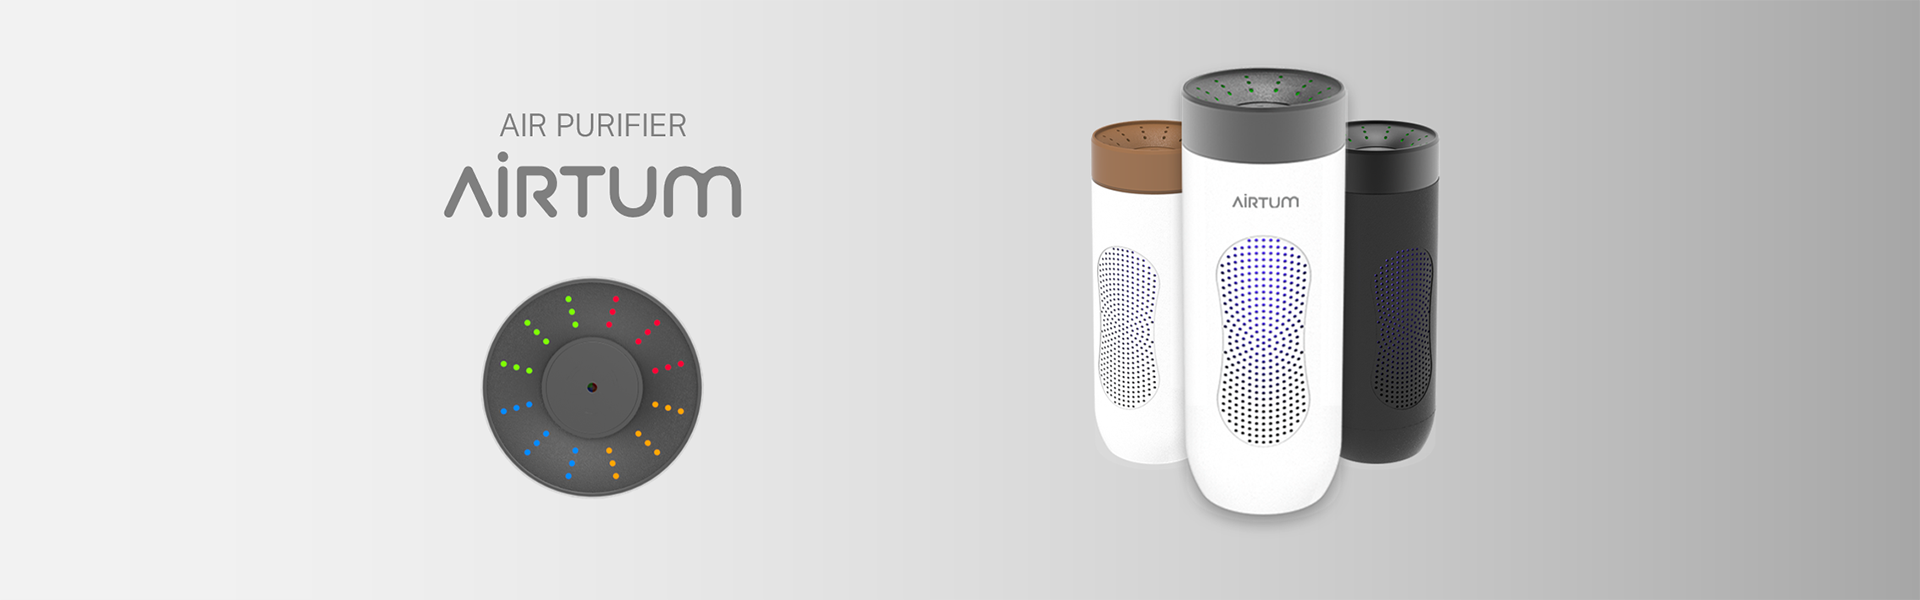 Multi Purpose Air Purifier AIRTUM